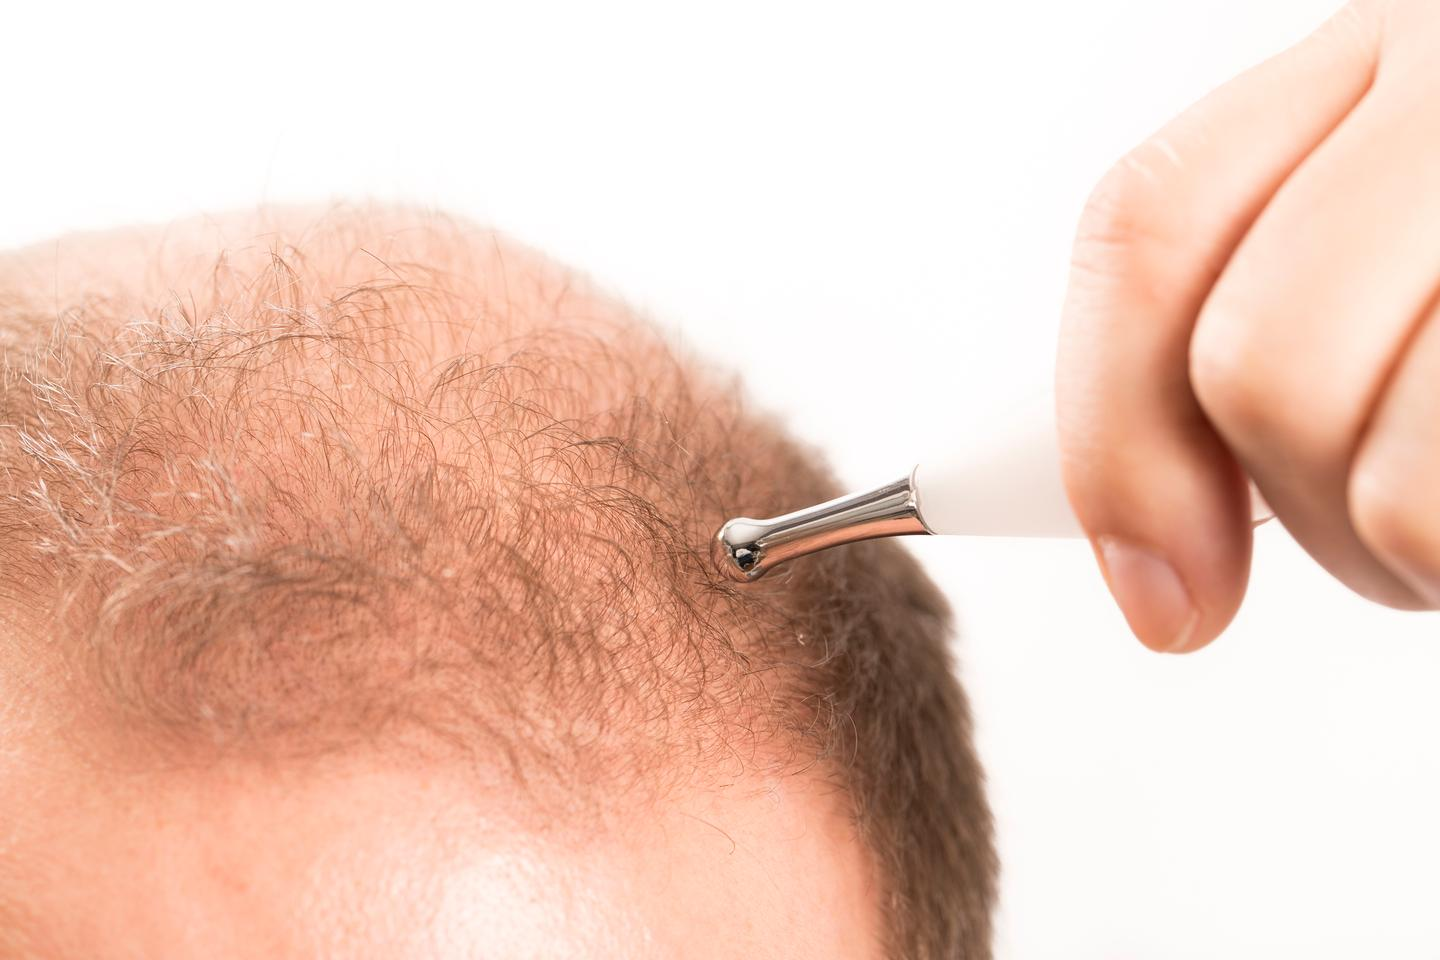 Scientists have identified a new mechanism that causes hair follicle stem cells to lose their ability to regenerate